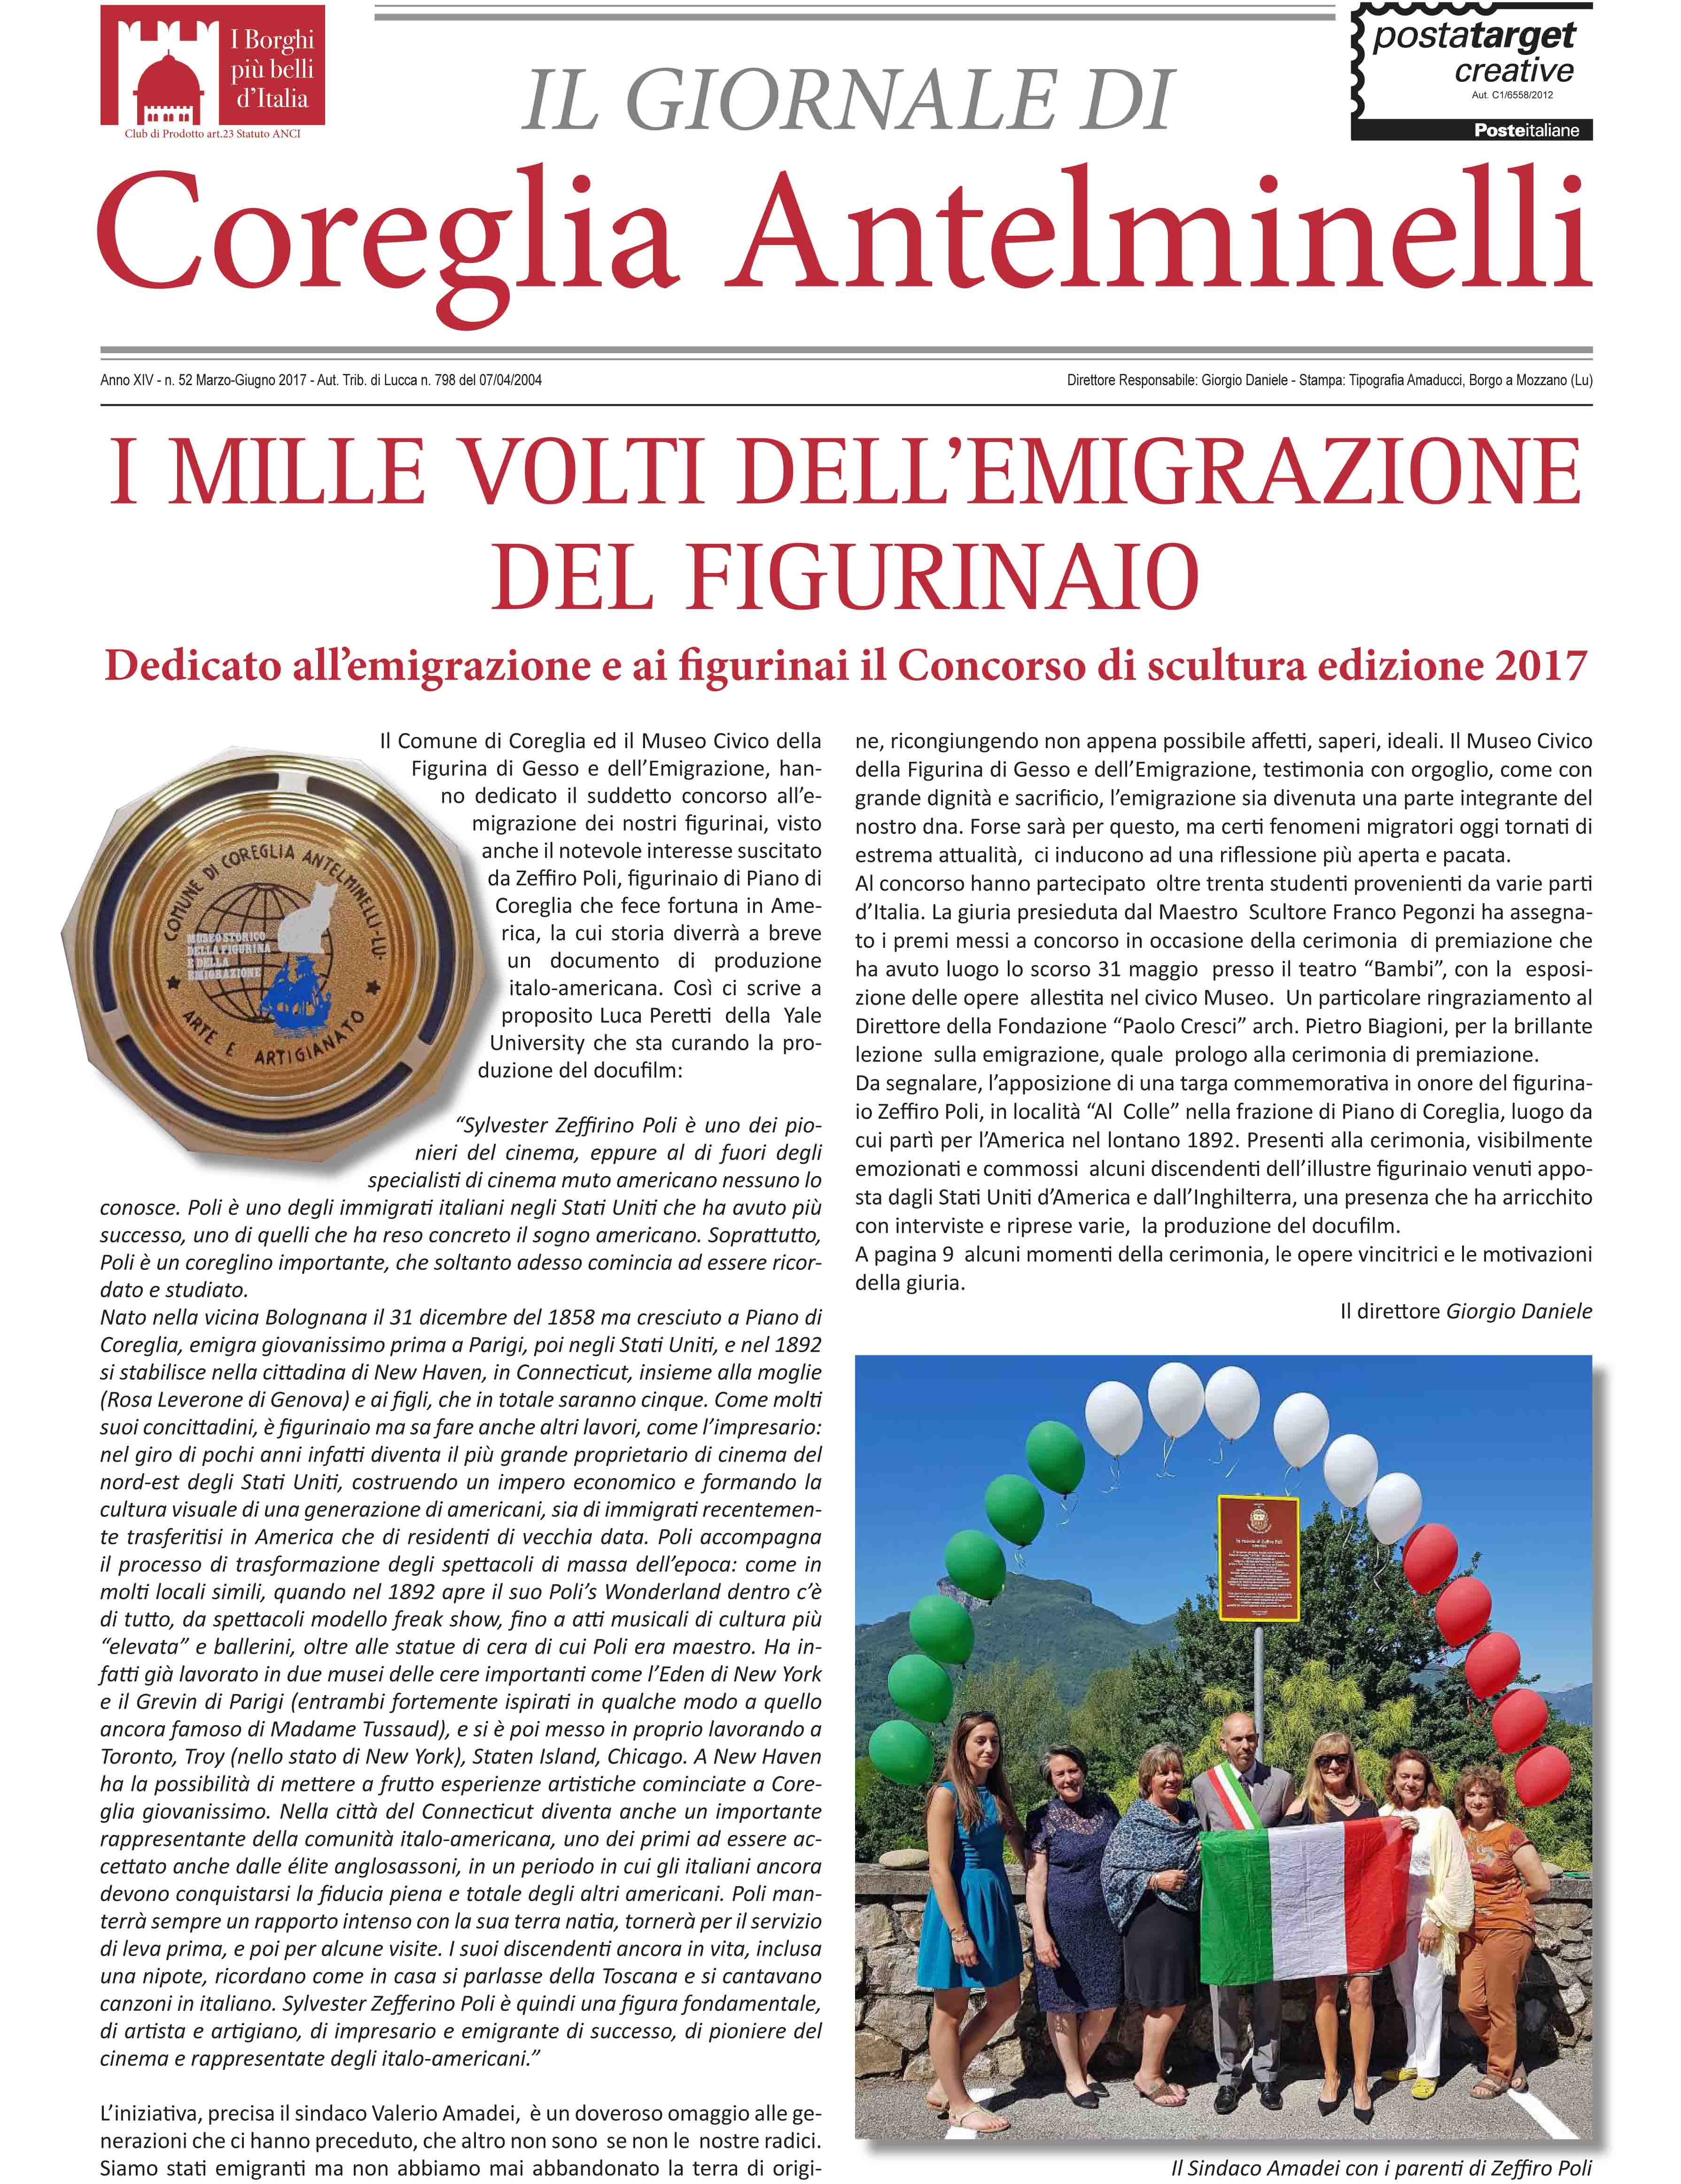 giornale-1